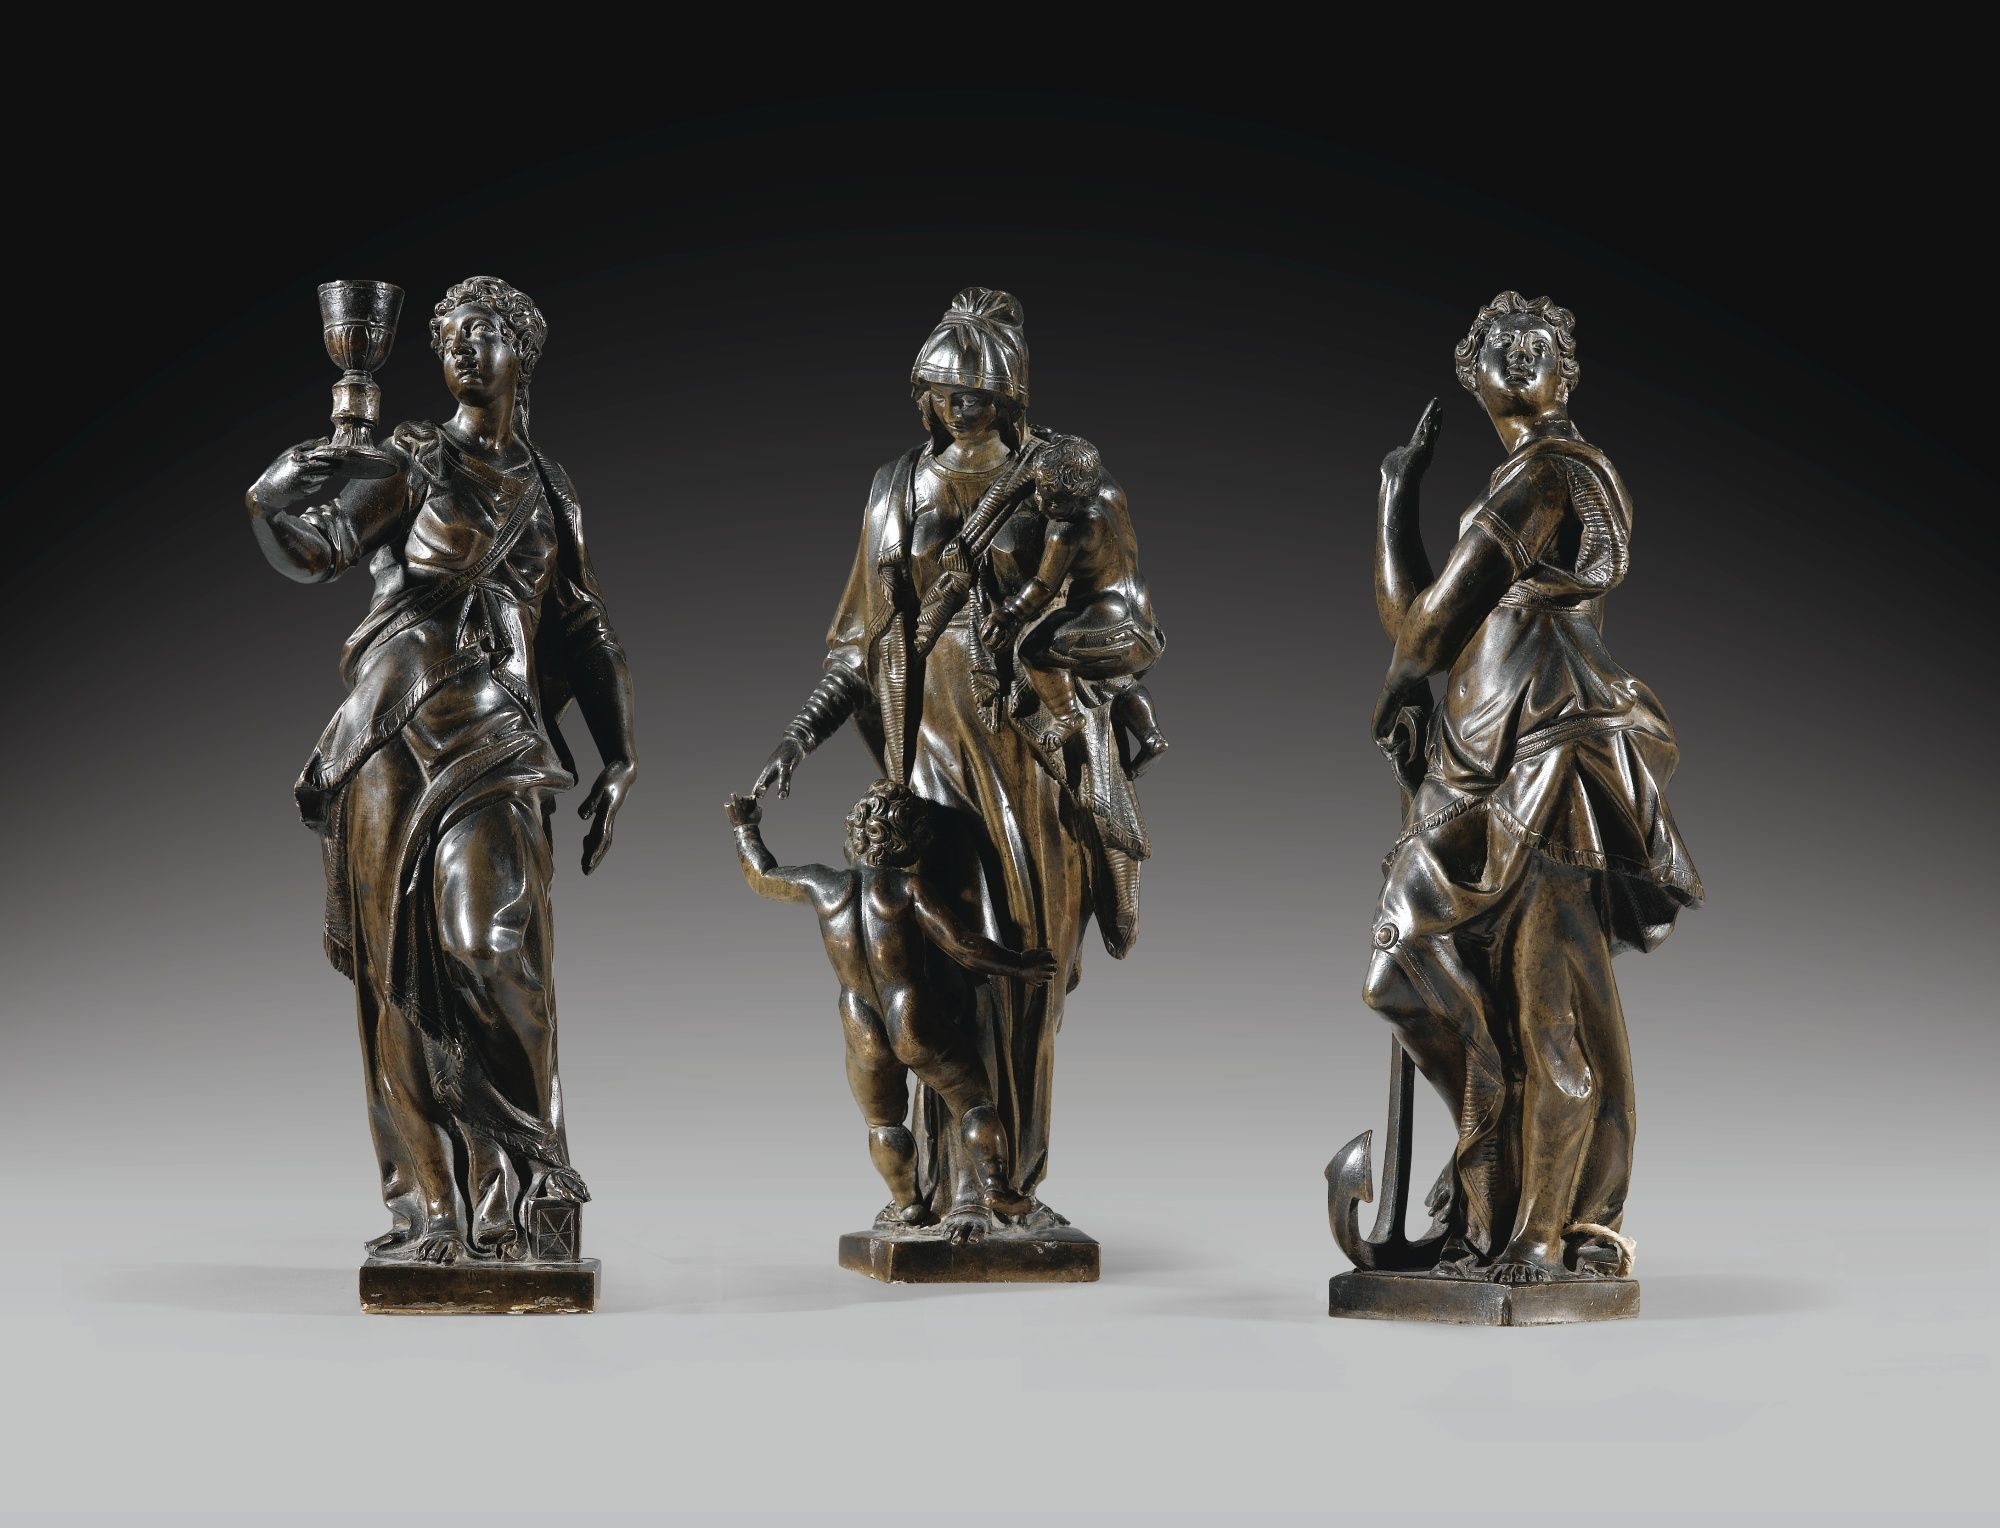 THREE VENETIAN ALLEGORICAL BRONZE FIGURES OF HOPE, CHARITY AND PRUDENCE, ATTRIBUTED TO TIZIANO ASPETTI (1557-1606); ON LATER MARBLE BASES_1.jpg (2000×1528)